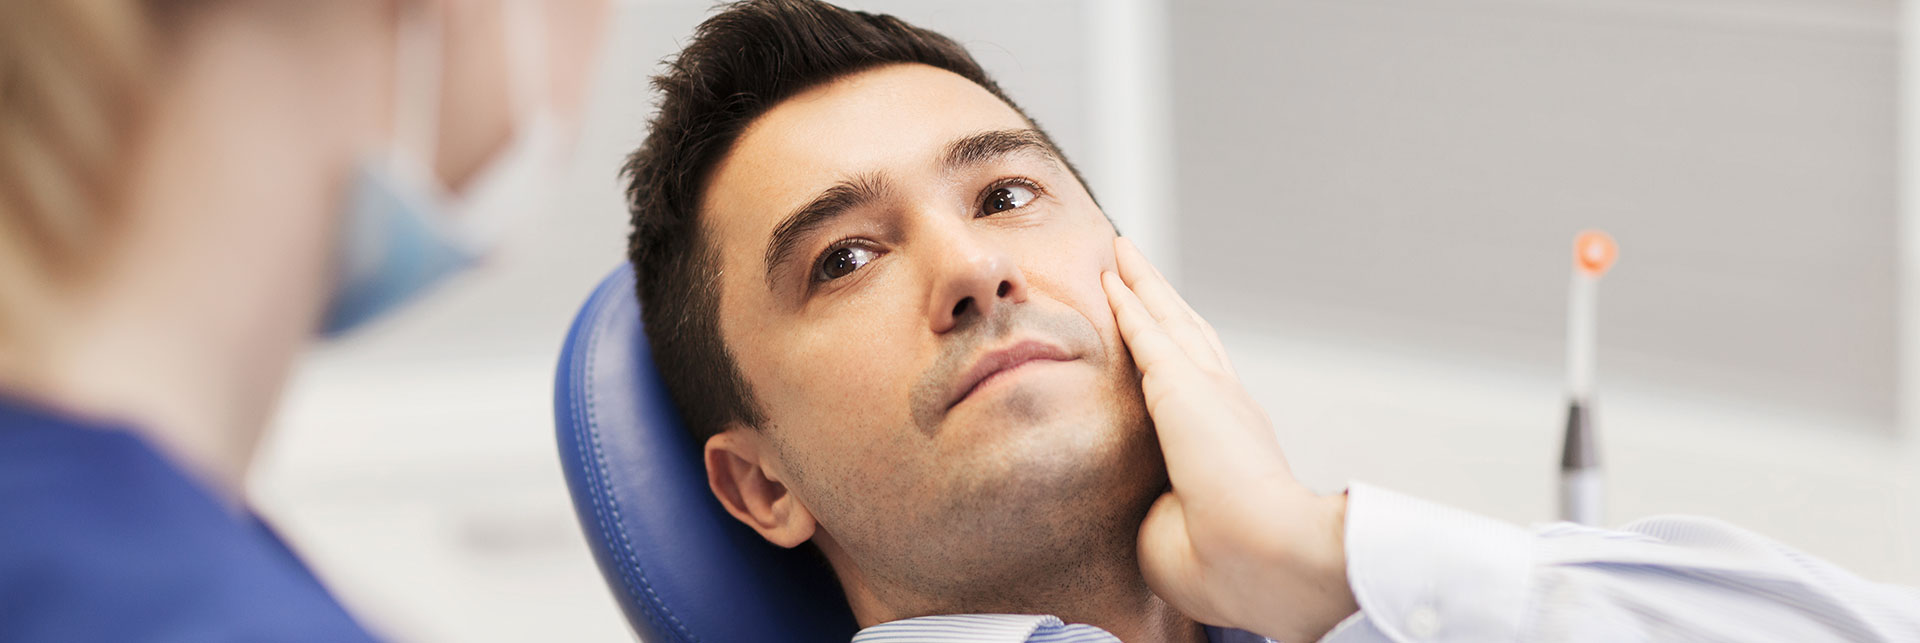 Chipped Tooth Repair Odenton, MD